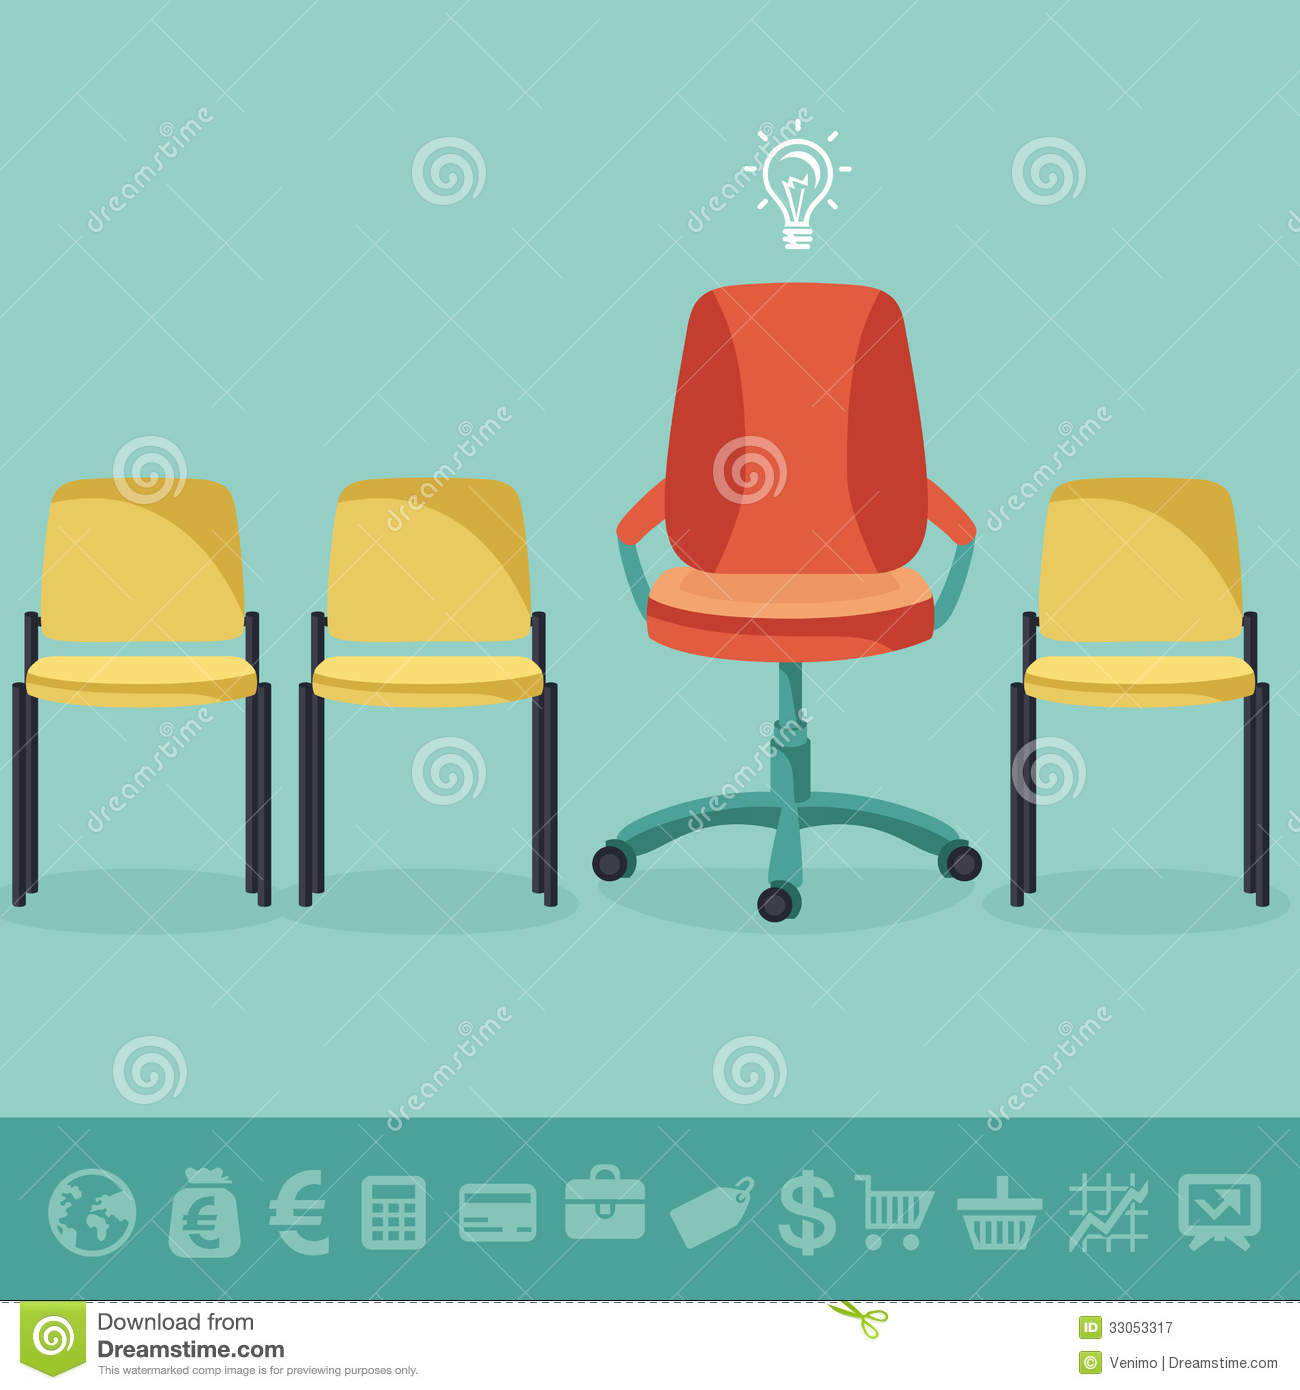 office chair vector suvs with captain chairs 2018 concept stock illustration of